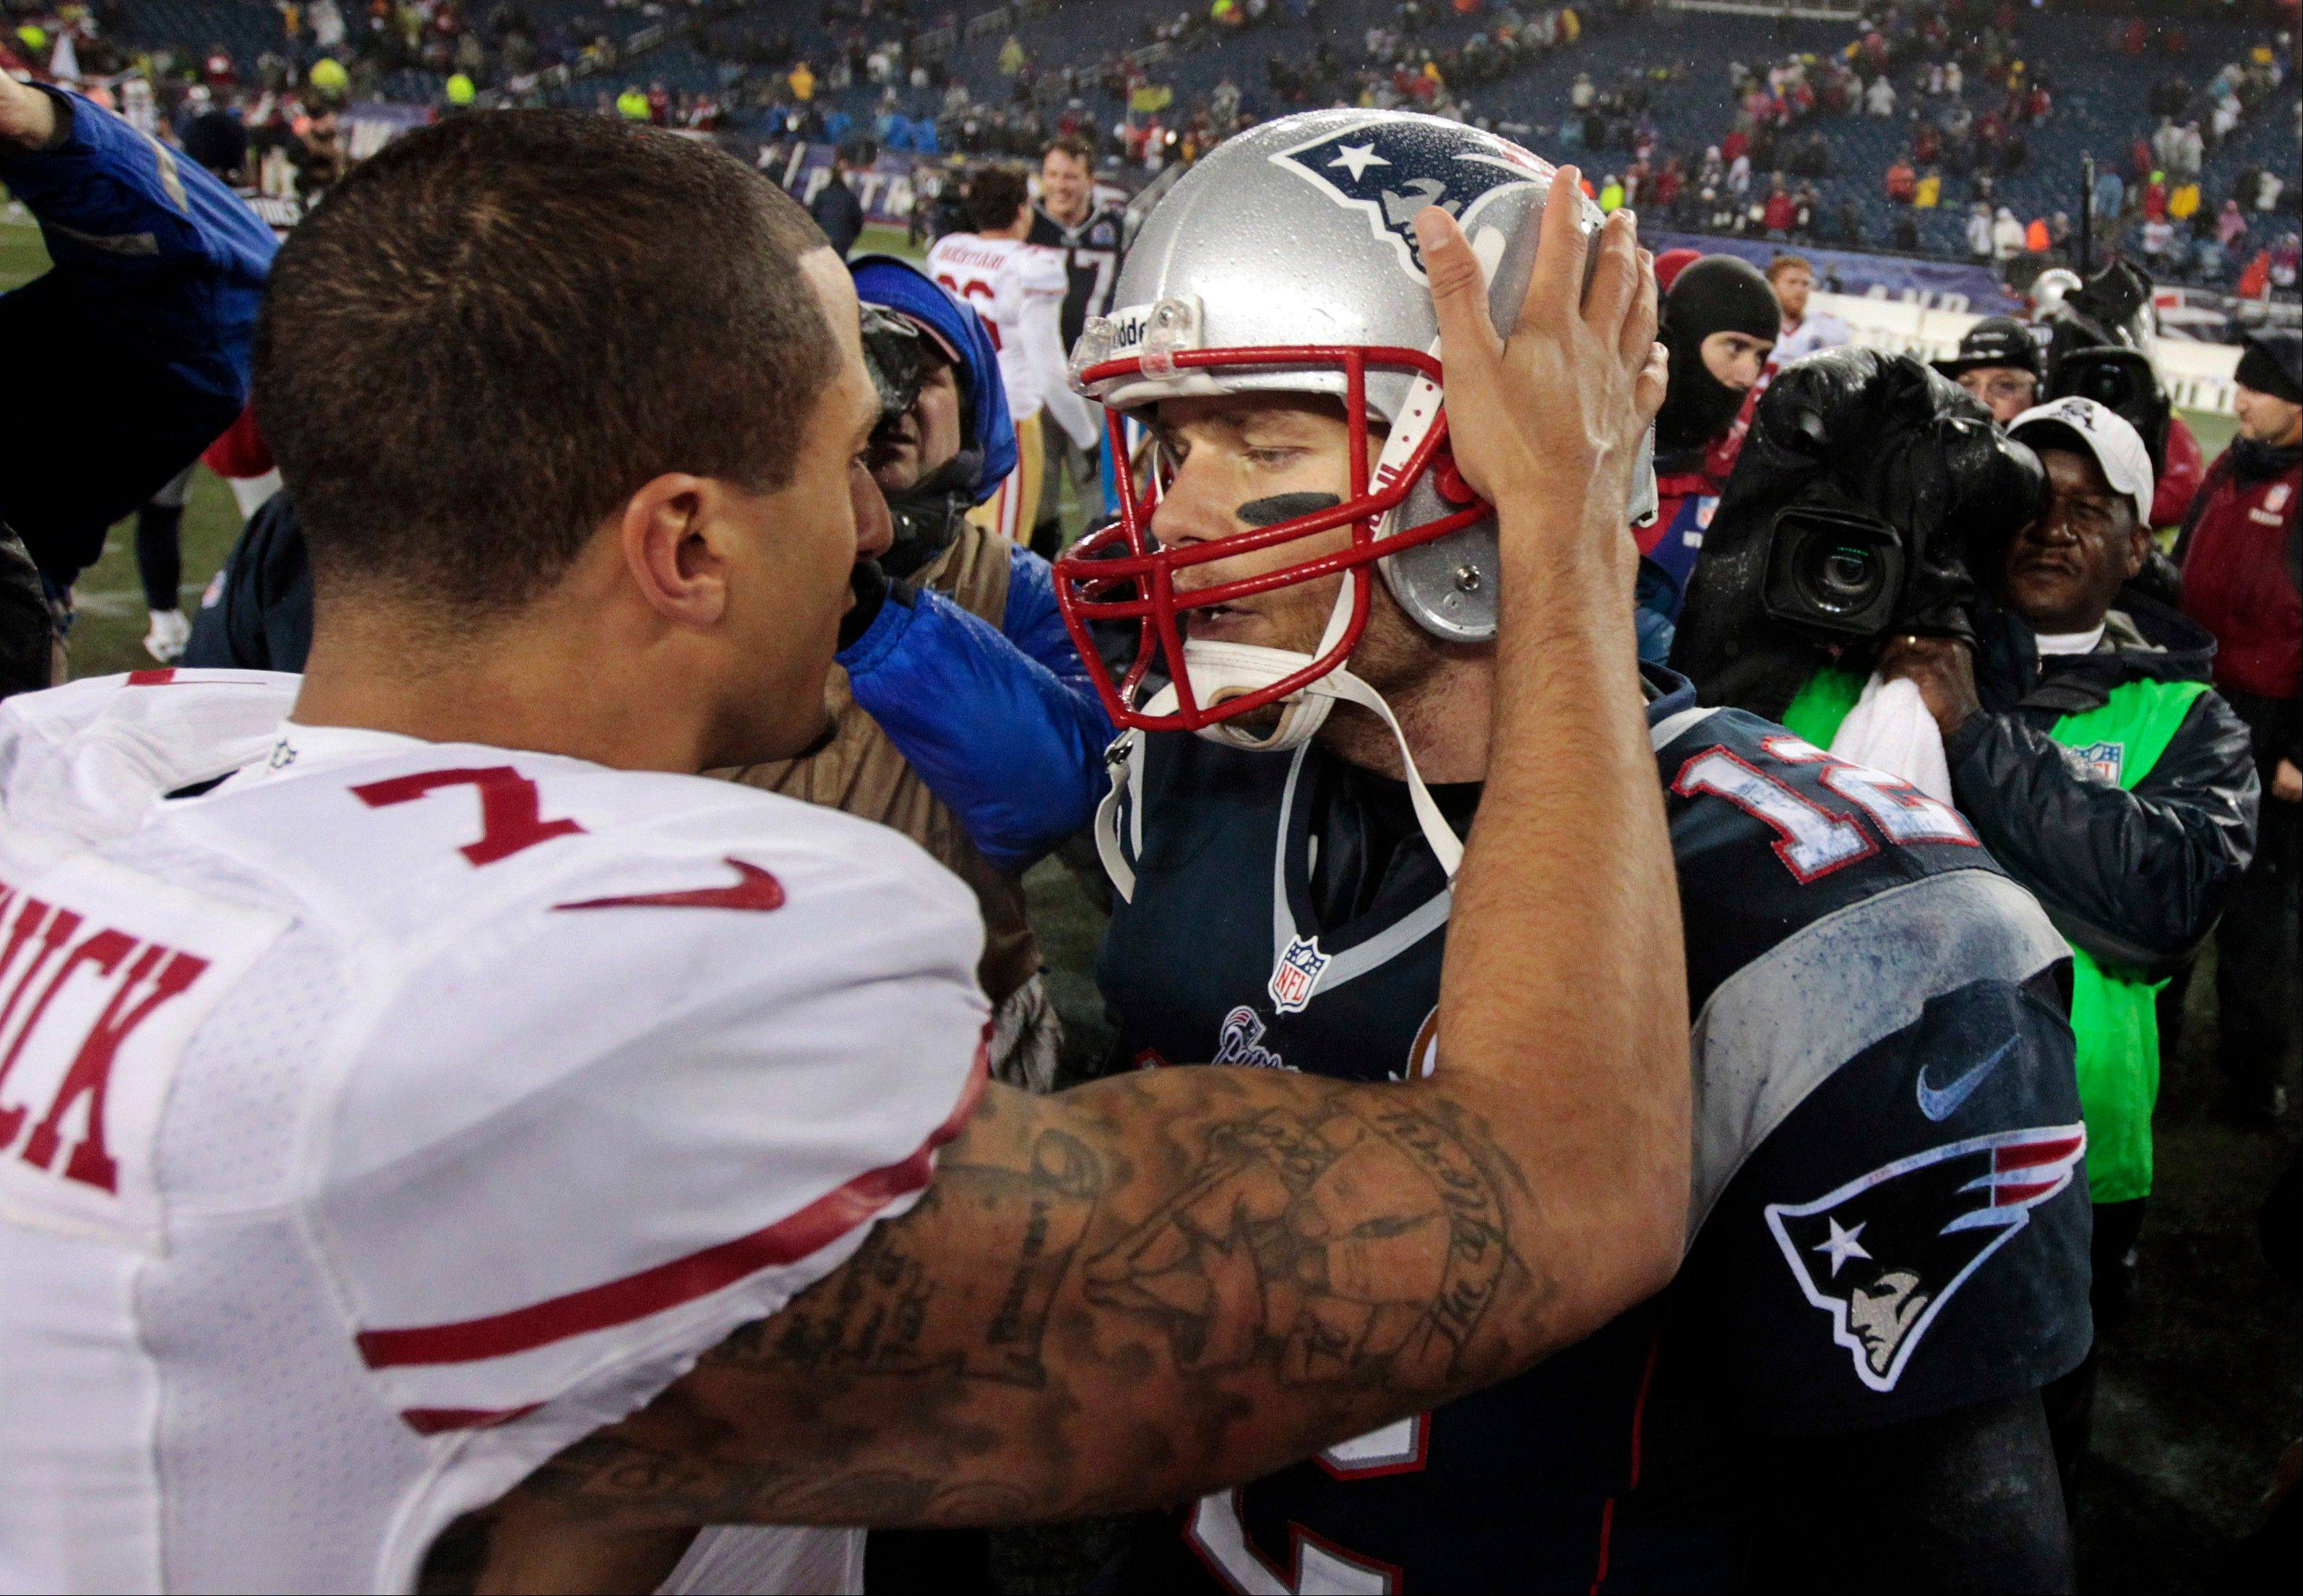 San Francisco 49ers quarterback Colin Kaepernick (7) and New England Patriots quarterback Tom Brady (12) meet at midfield after their game in Foxborough, Mass., Monday. The 49ers won 41-34.